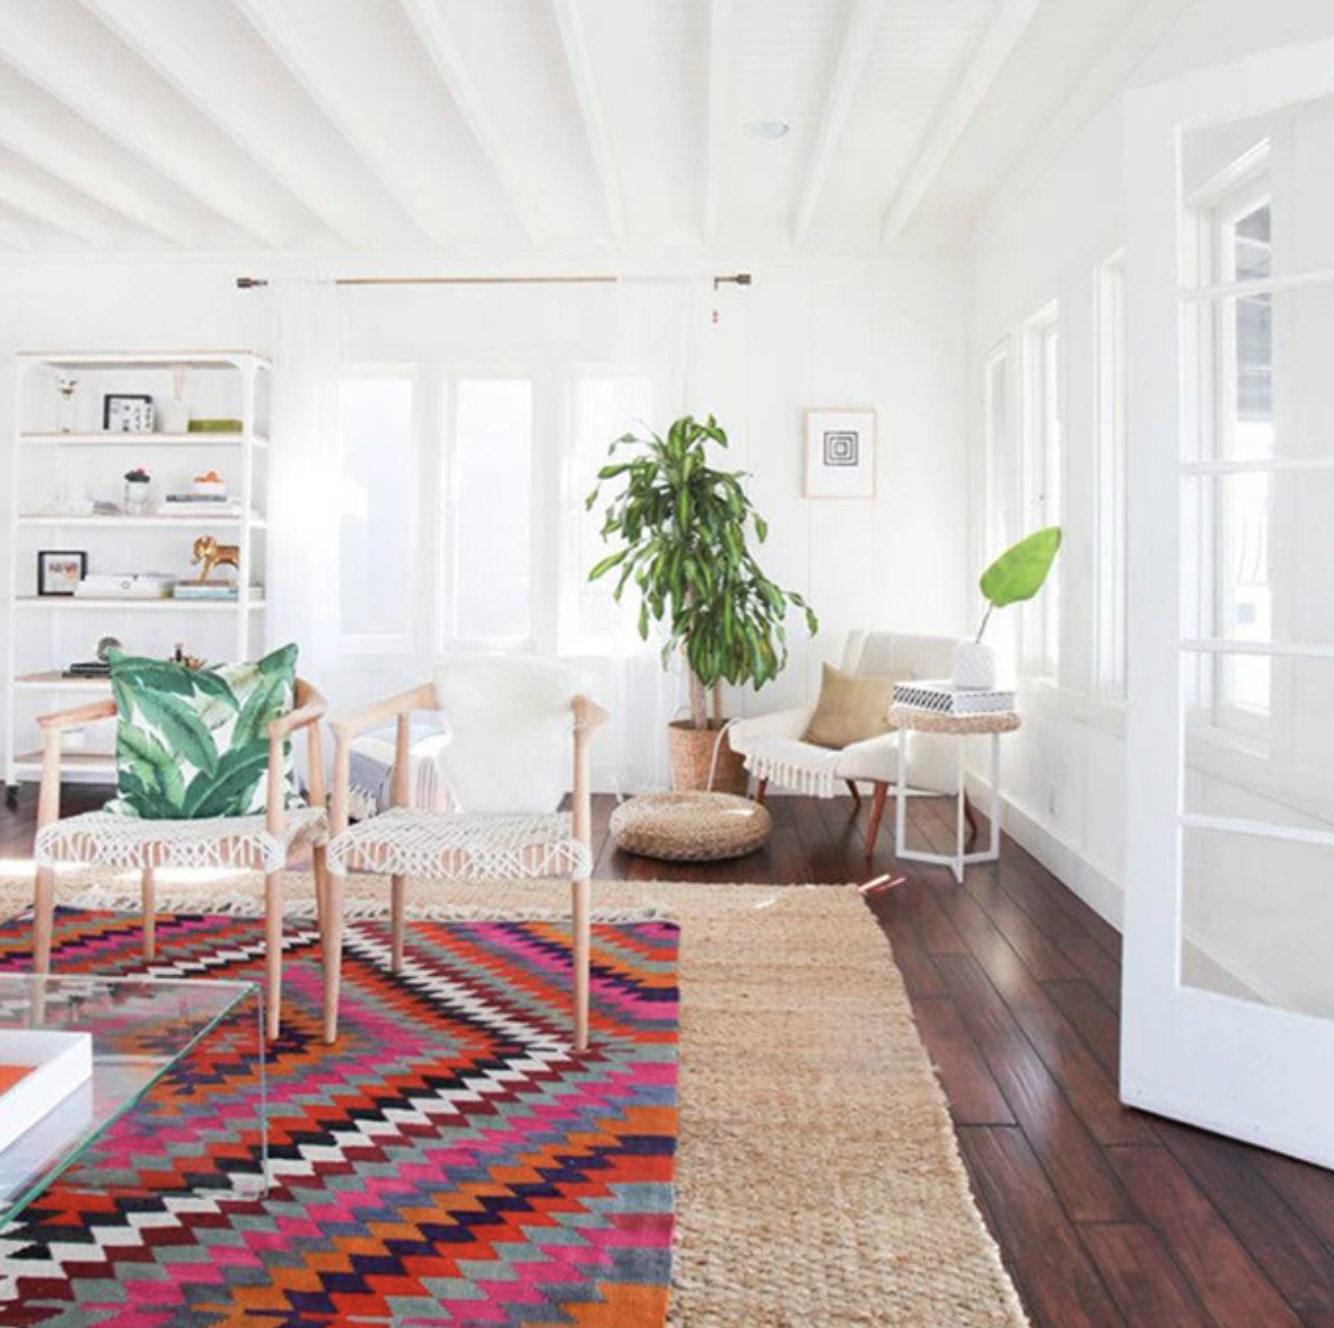 Affordable Home Decor - Layered Rugs